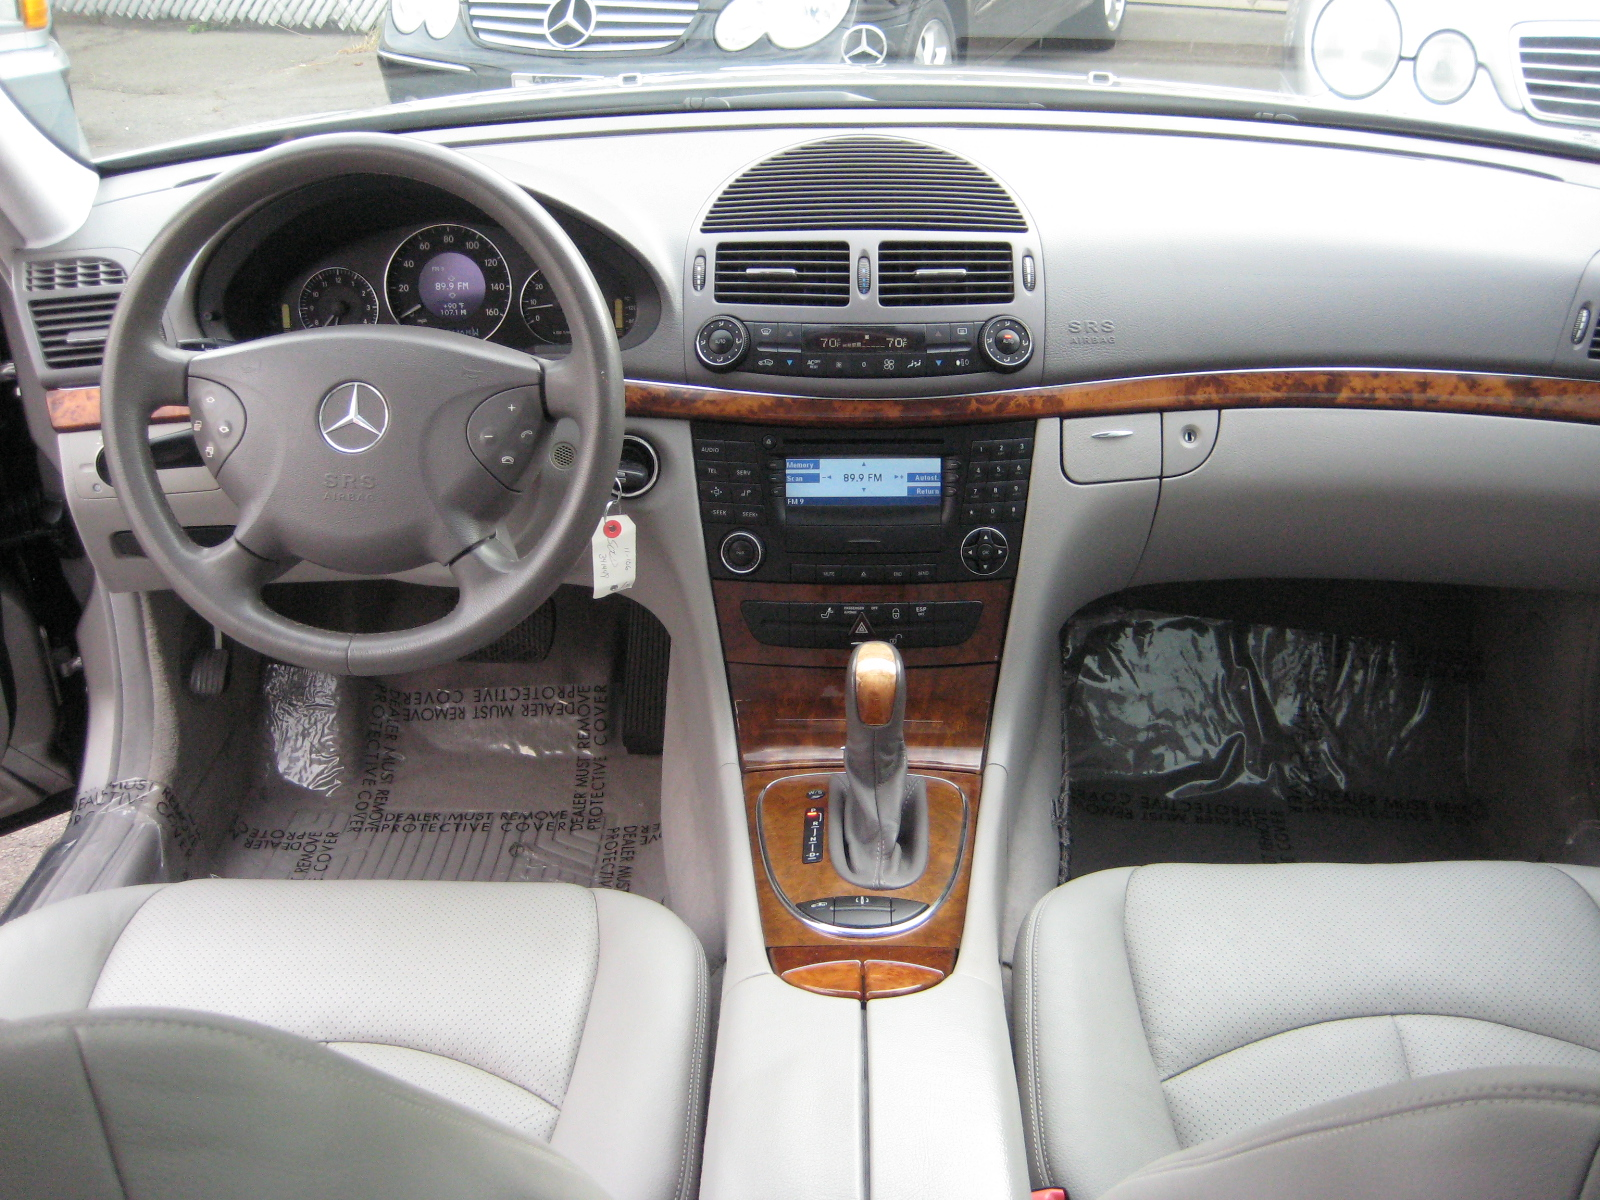 2004 Mercedes Benz E Class Pictures C6105 pi35646113 additionally 2008 Mercedes Benz E550 Sport 2006 2007 2009 2010 2011 E320 E500 E350 1172268 moreover 2016 Mercedes Benz Gle M Class Changes And Release Date likewise W211 Mercedes E Class Top 10 Mods Upgrades Accessories further 2006 Mercedes Benz E Class E500 Pictures T19779. on 2010 mercedes e500 interior